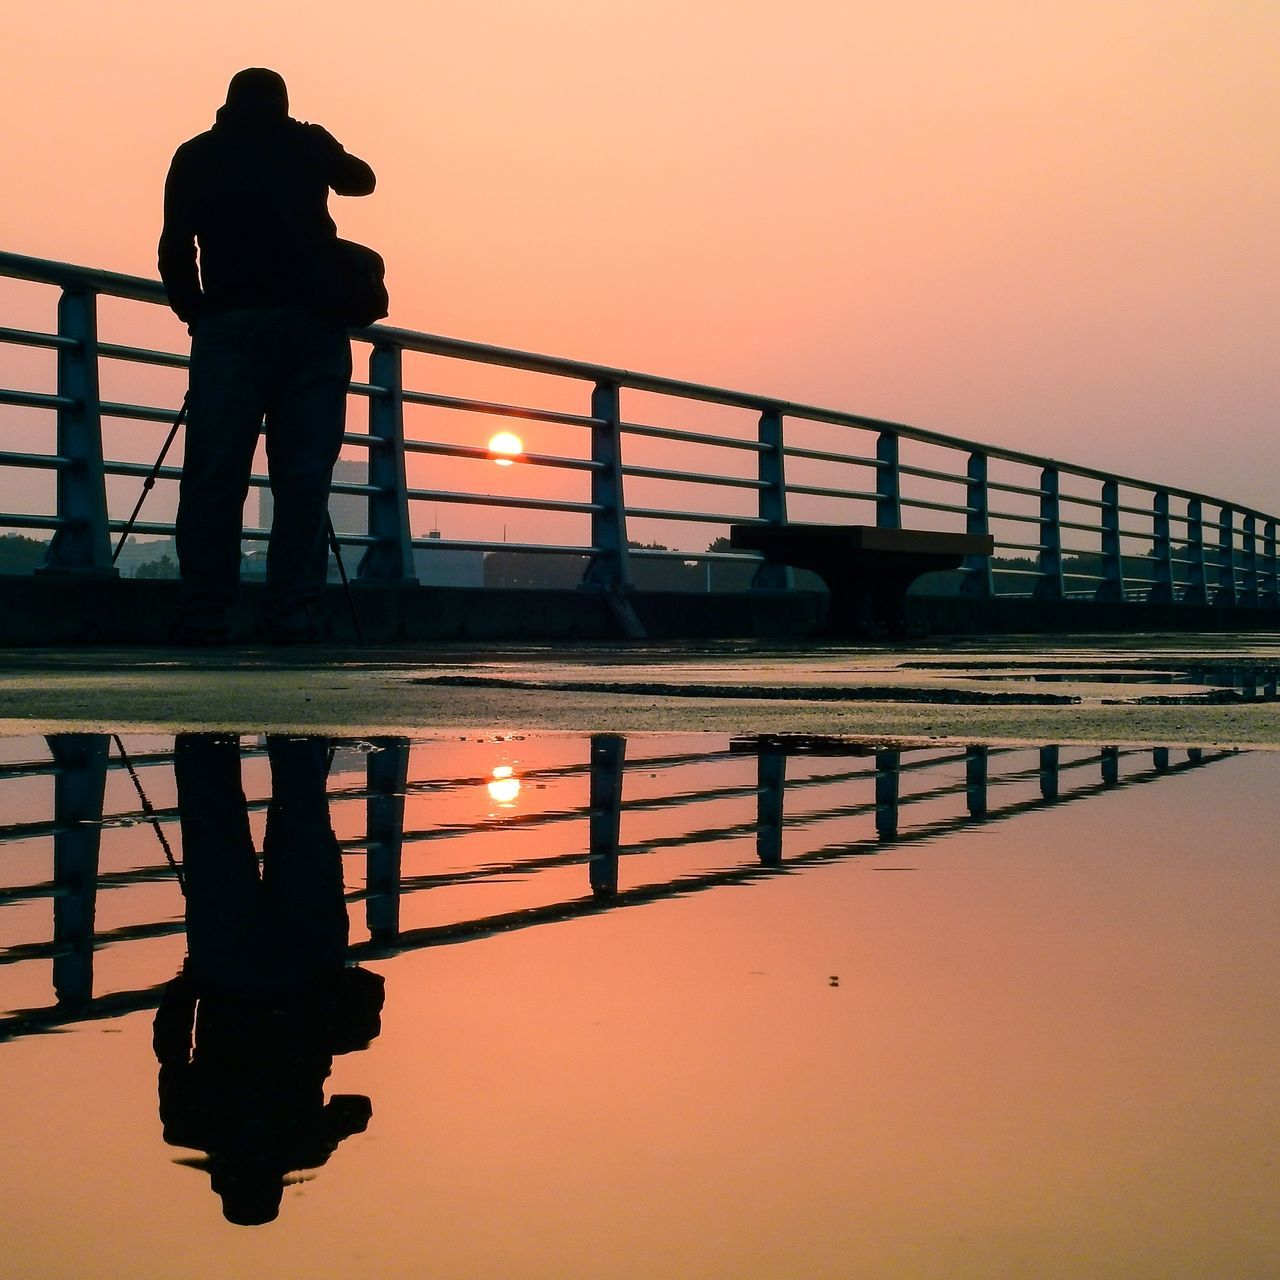 sunset, silhouette, reflection, bridge - man made structure, orange color, water, railing, real people, sky, men, standing, full length, river, lifestyles, waterfront, walking, architecture, outdoors, nature, clear sky, modern, one person, footbridge, beauty in nature, city, day, people